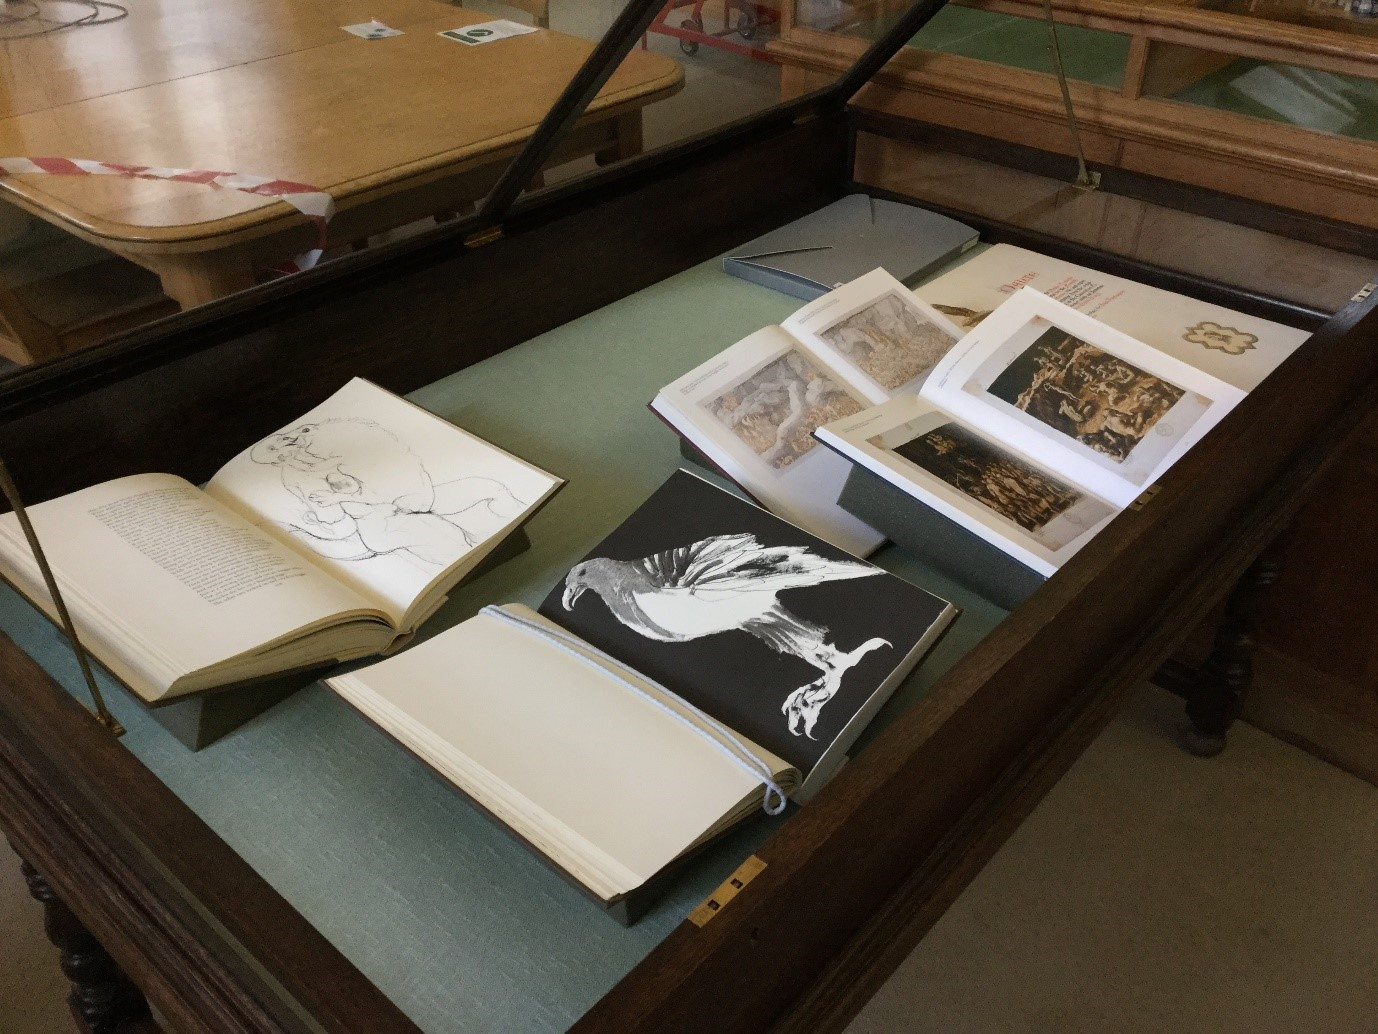 Open display case with selection of illustrated books